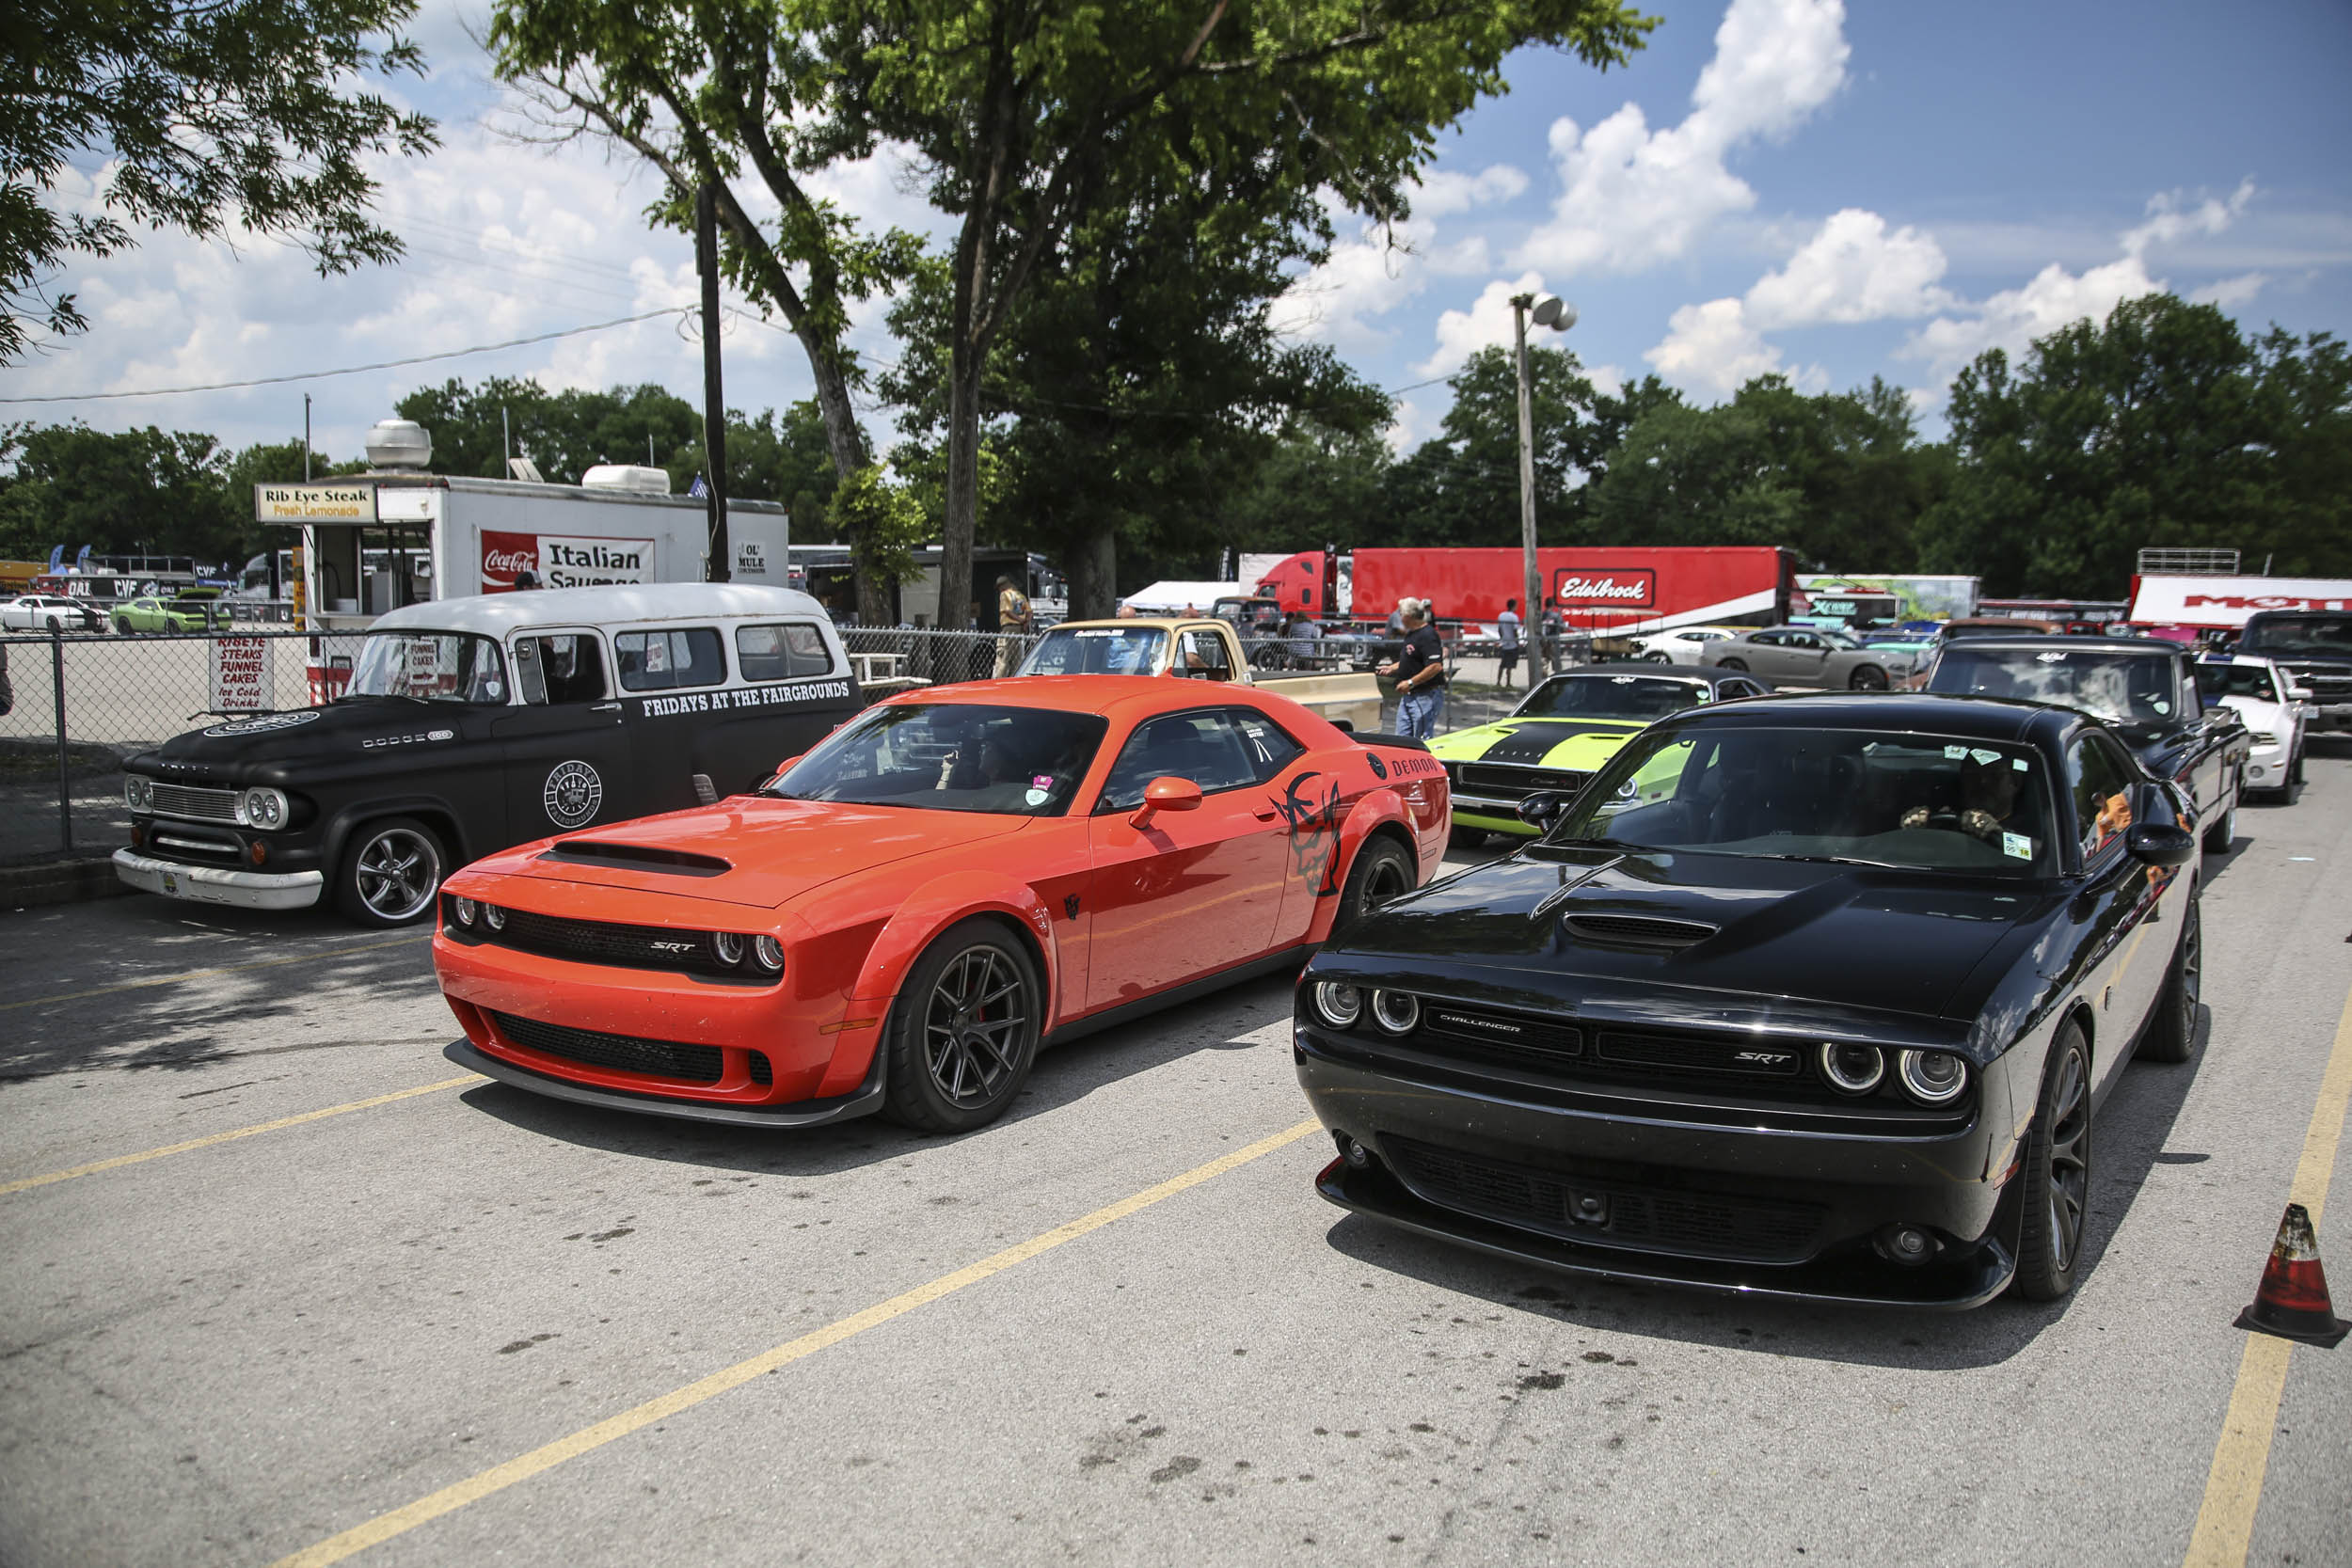 The staging lanes for the dragstrip offered an eclectic mix of import and domestic, old and new. Here's a Demon and Hellcat waiting to battle. Behind the Demon is an E-body Challenger.